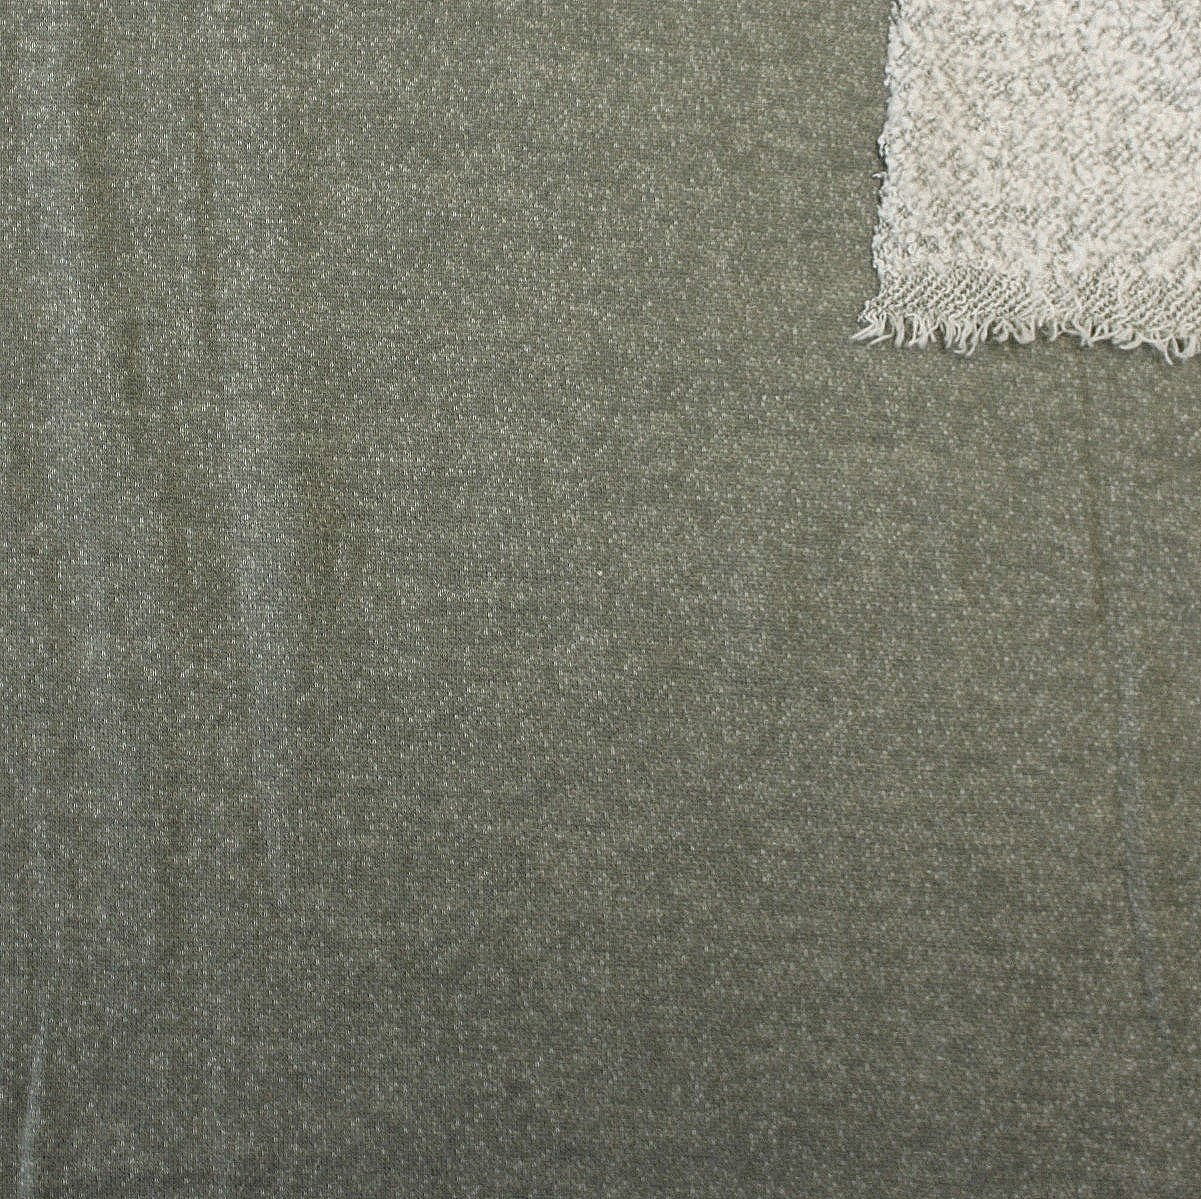 Dusty Olive Brushed Heathered French Terry Knit Fabric - Raspberry Creek Fabrics Knit Fabric